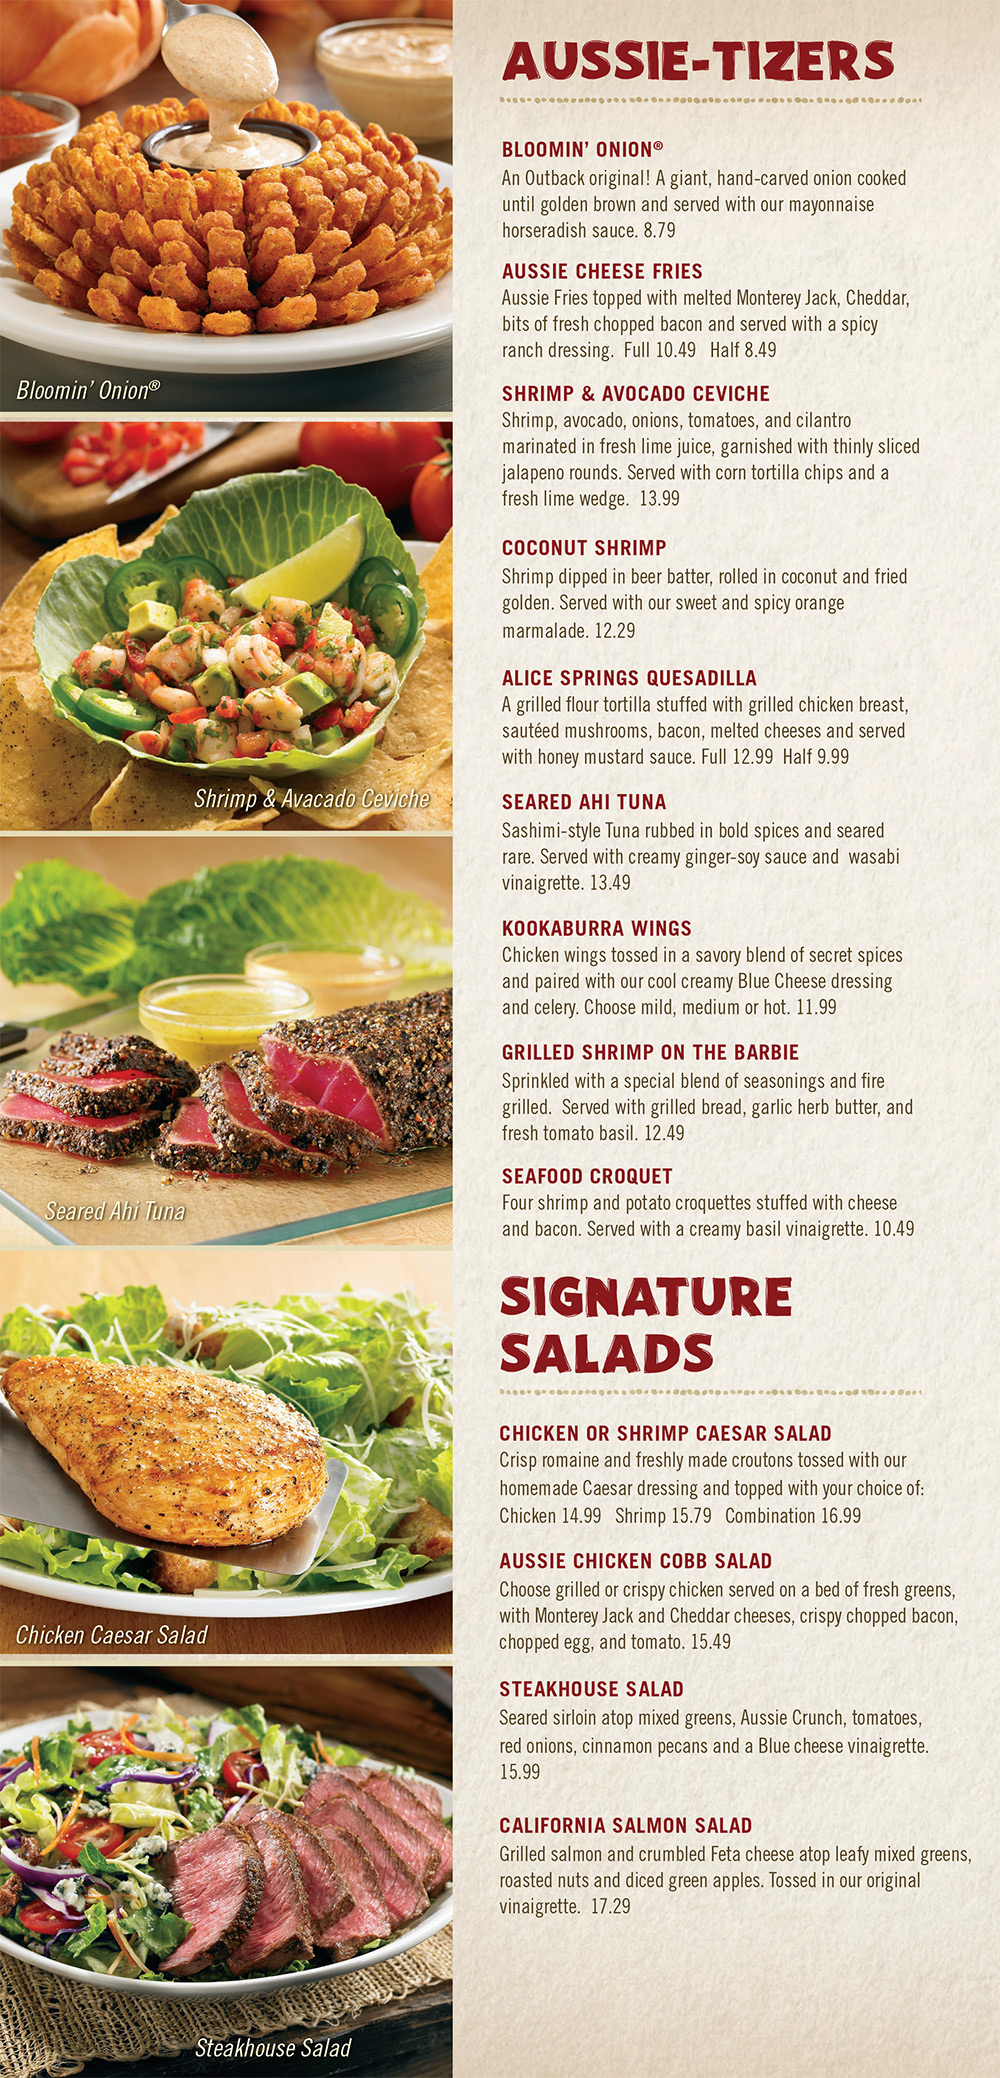 Outback Steakhouse. The home of juicy steaks, spirited drinks and Aussie hospitality. Enjoy steak, chicken, ribs, fresh seafood & our famous Bloomin' Onion.